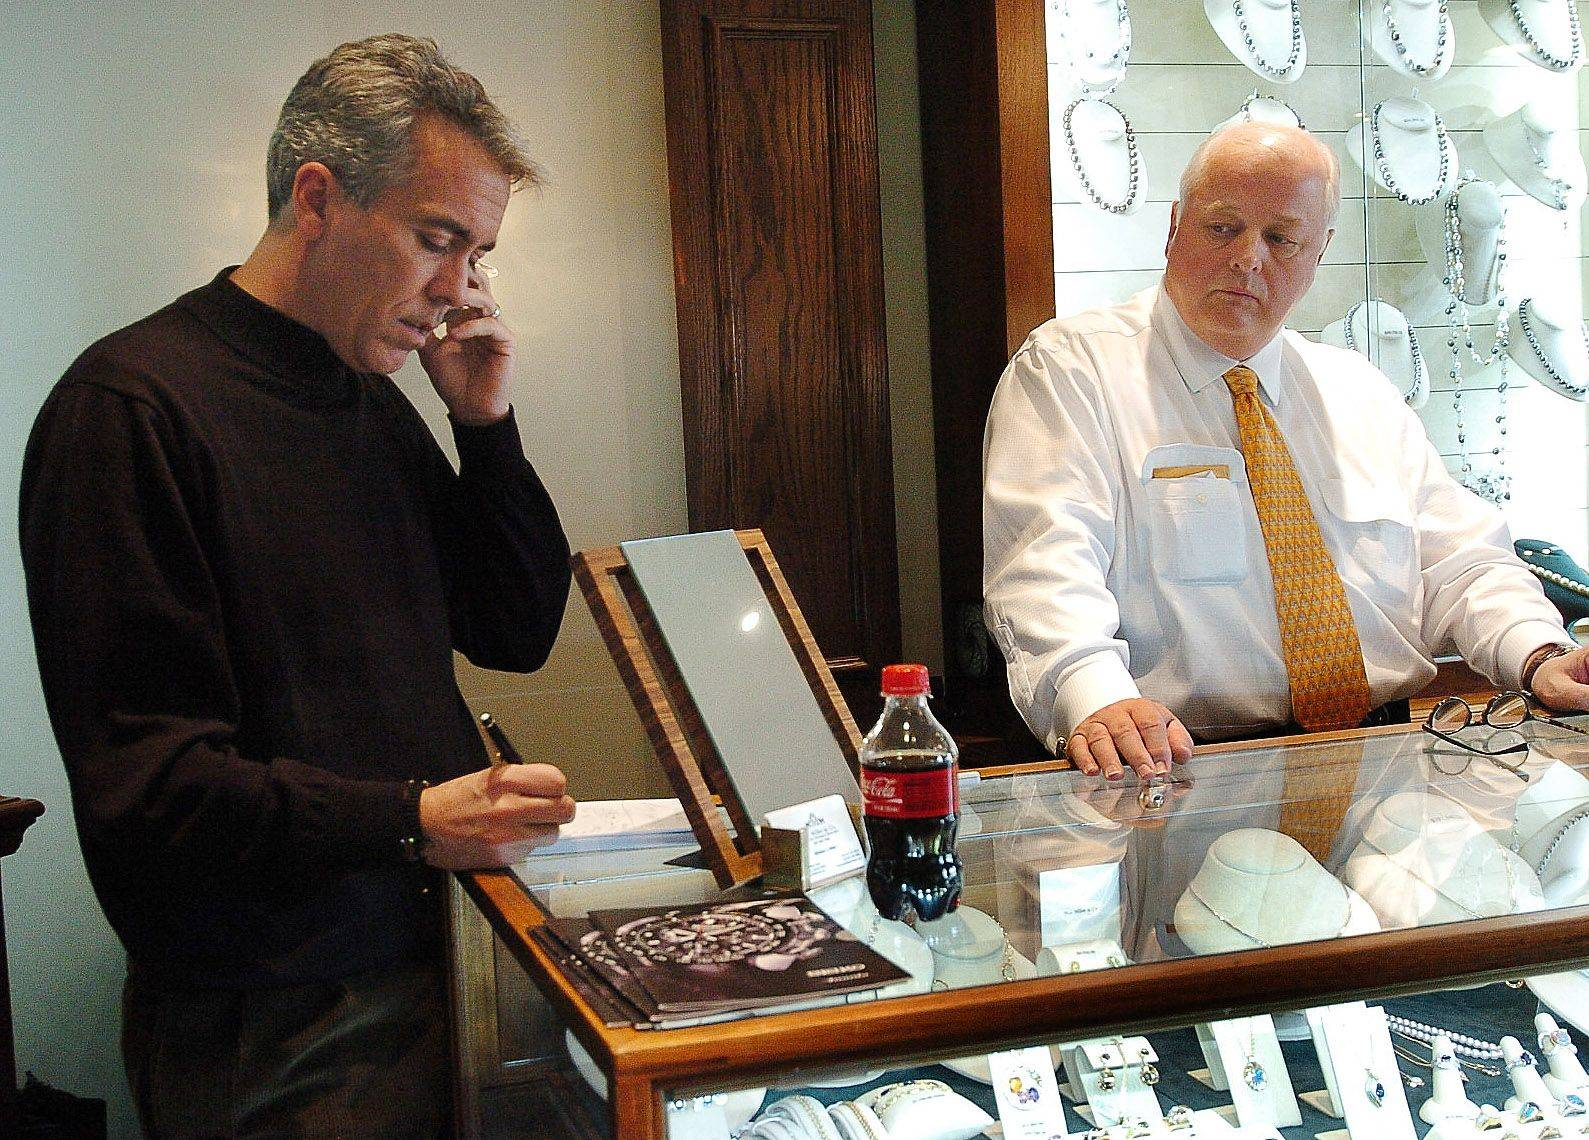 8th District candidate Joe Walsh working out of a makeshift office provided by M.J. Miller & Co. in Barrington, here with owner Michael J. Miller, on the day after the election.